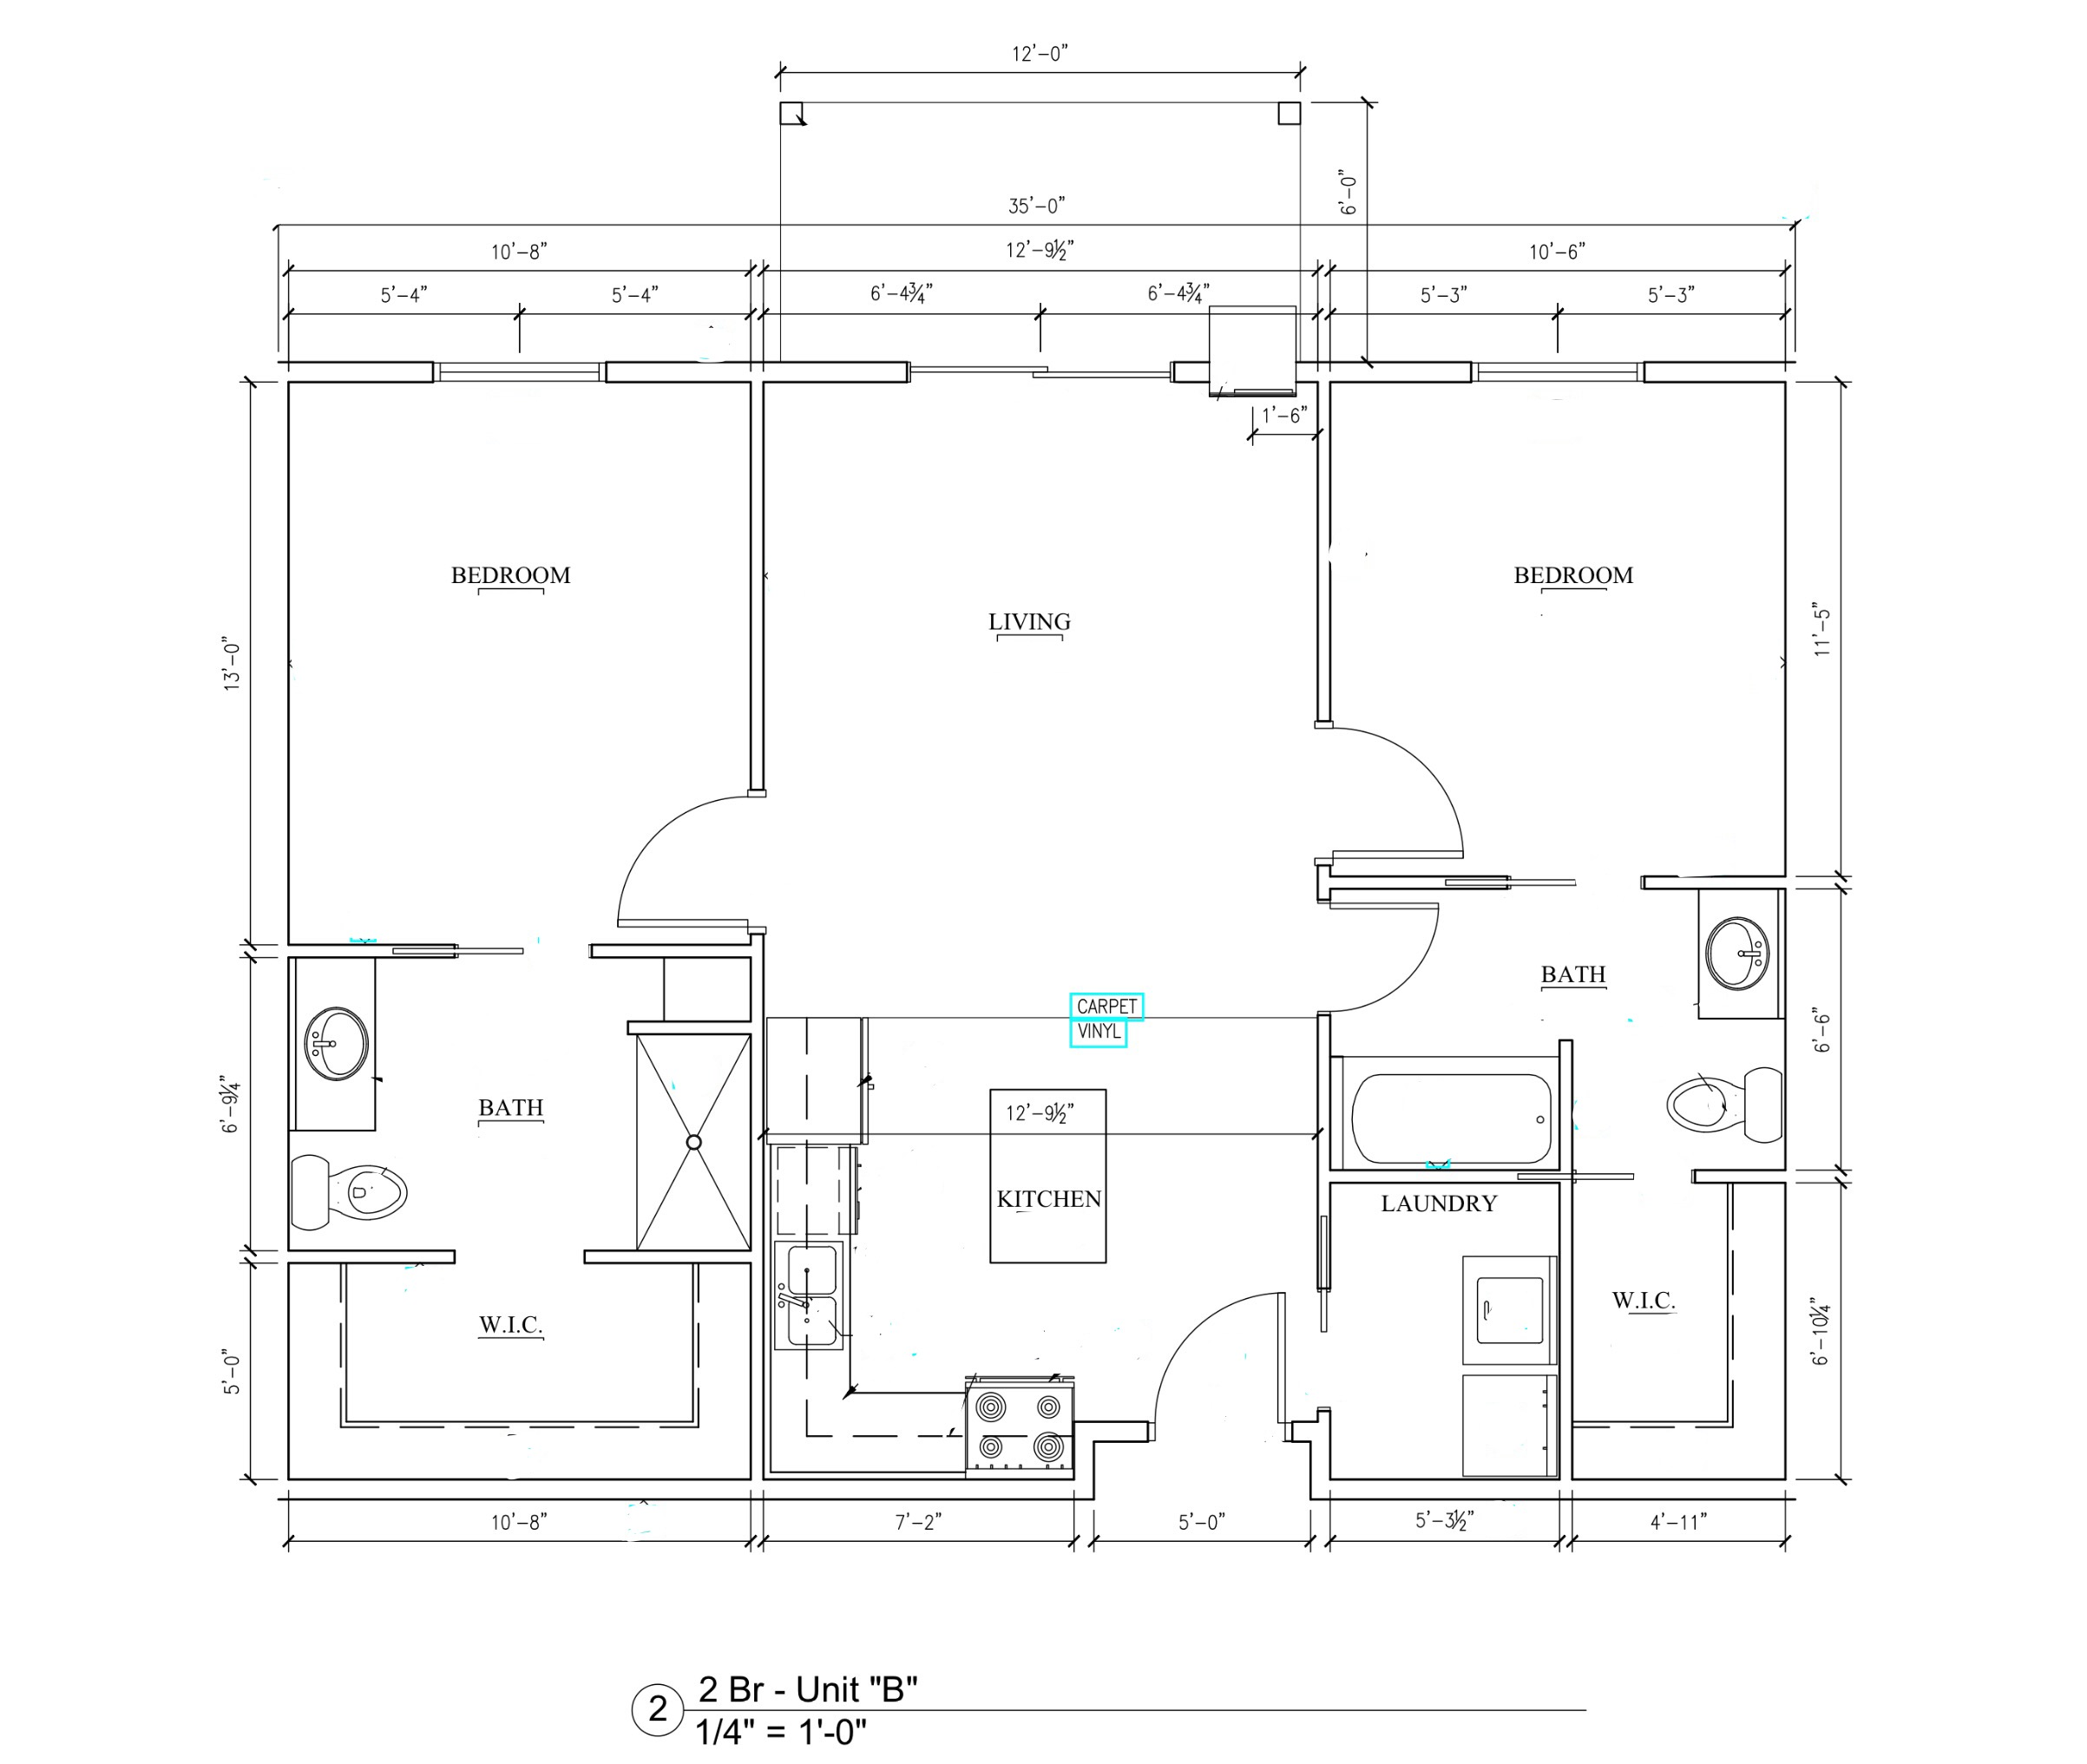 Phase II - 2 Bedroom Floor Plan